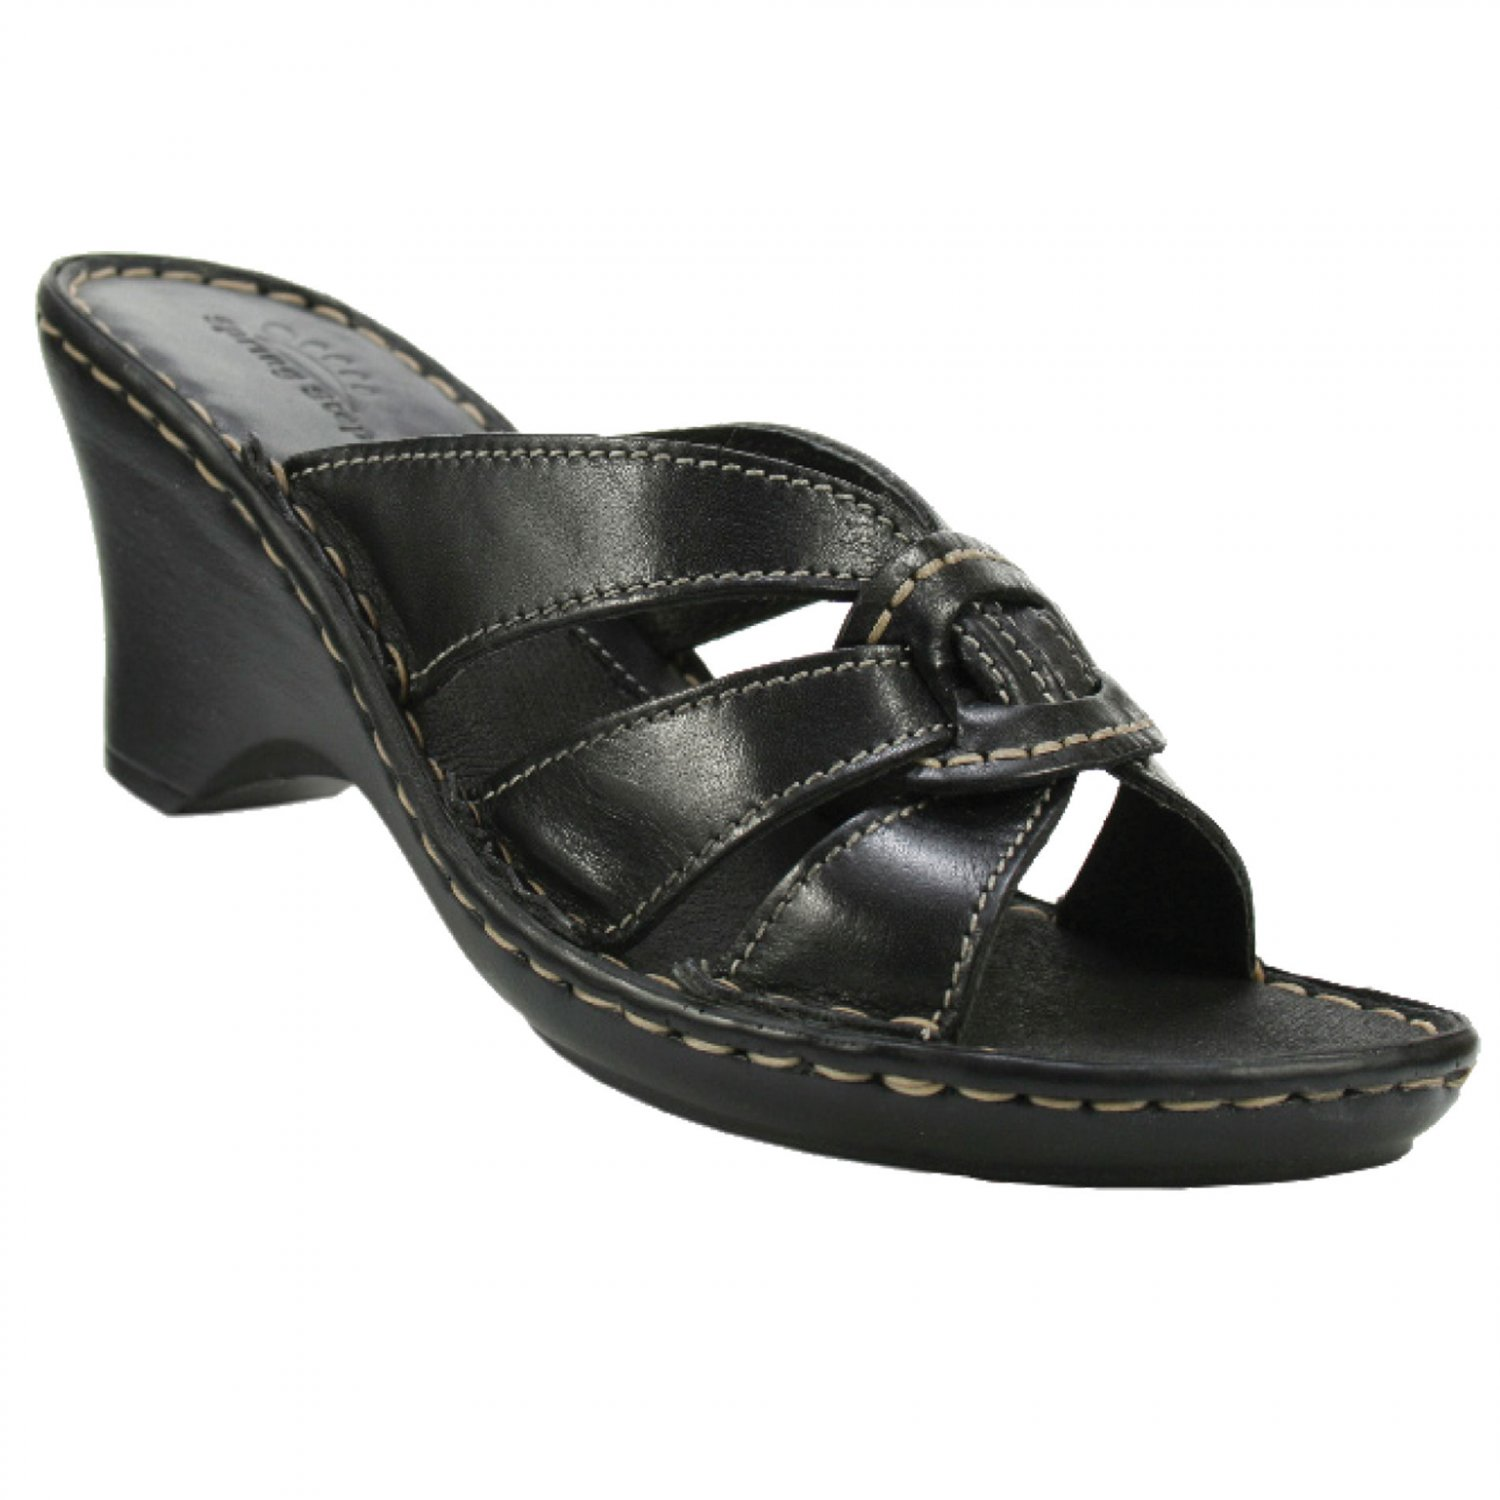 Spring Step KAYLEE Sandals Shoes All Sizes & Colors $6